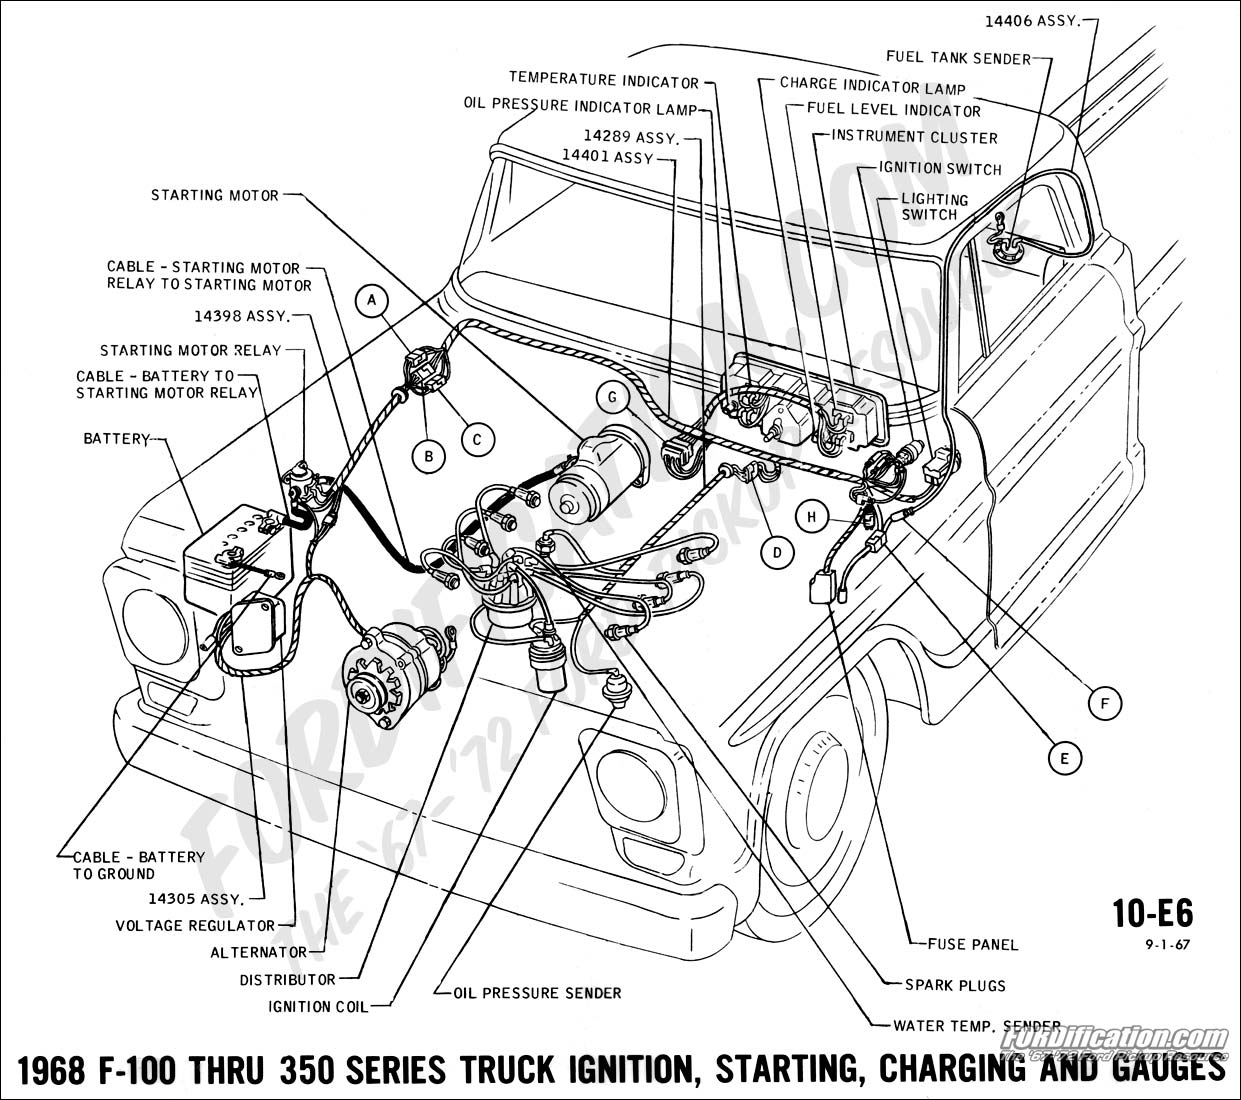 hight resolution of ford truck technical drawings and schematics section h wiring1968 f 100 thru f 350 ignition